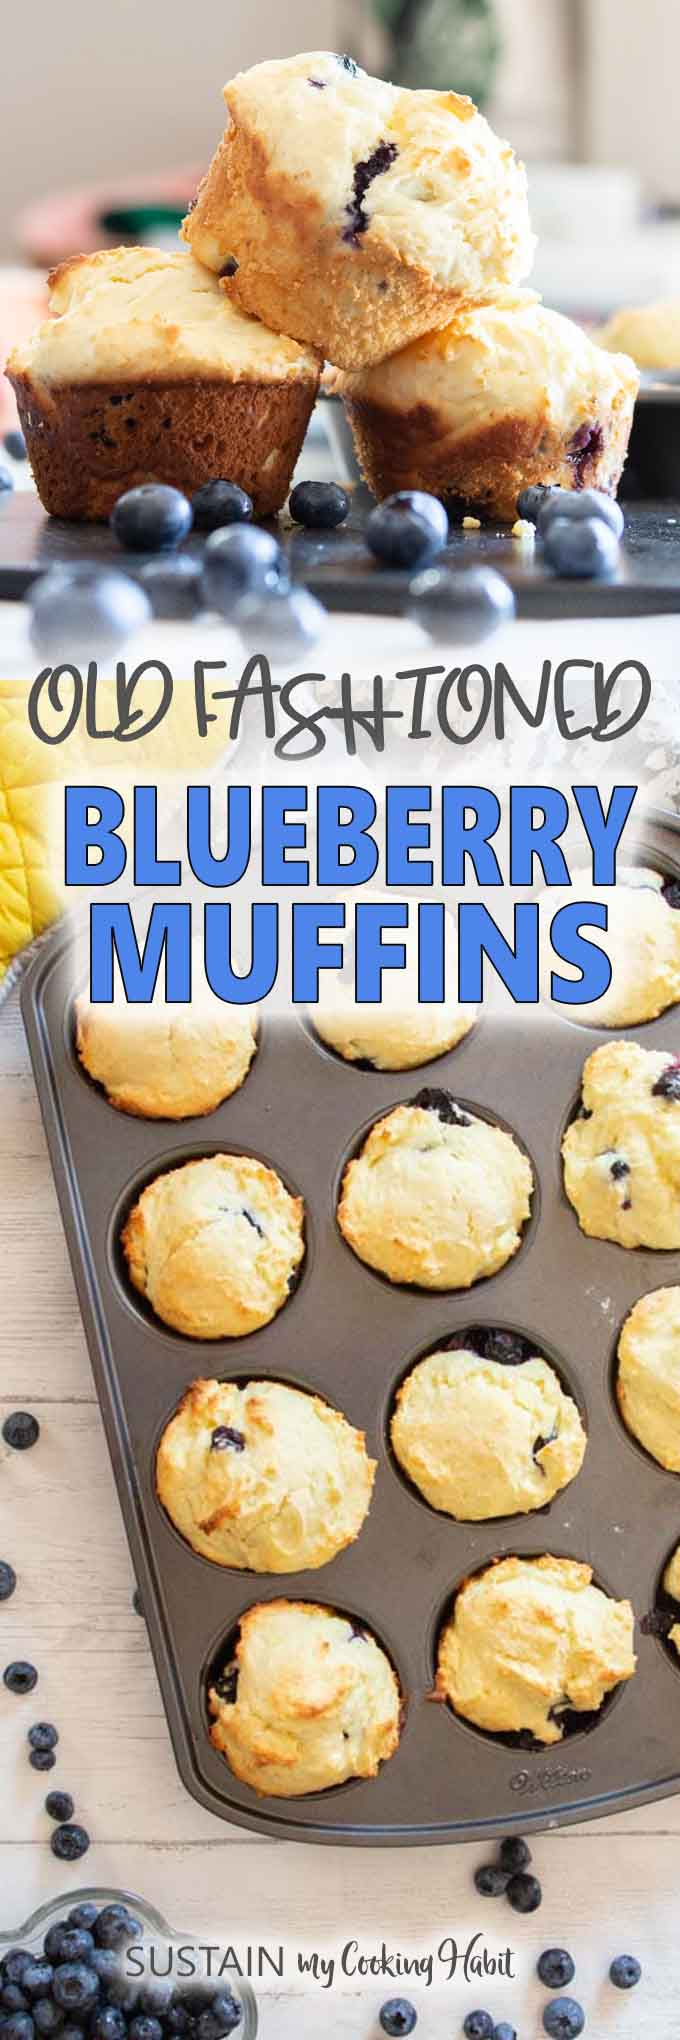 Long image with two photos and text overlay saying Old Fashioned Blueberry Muffins.